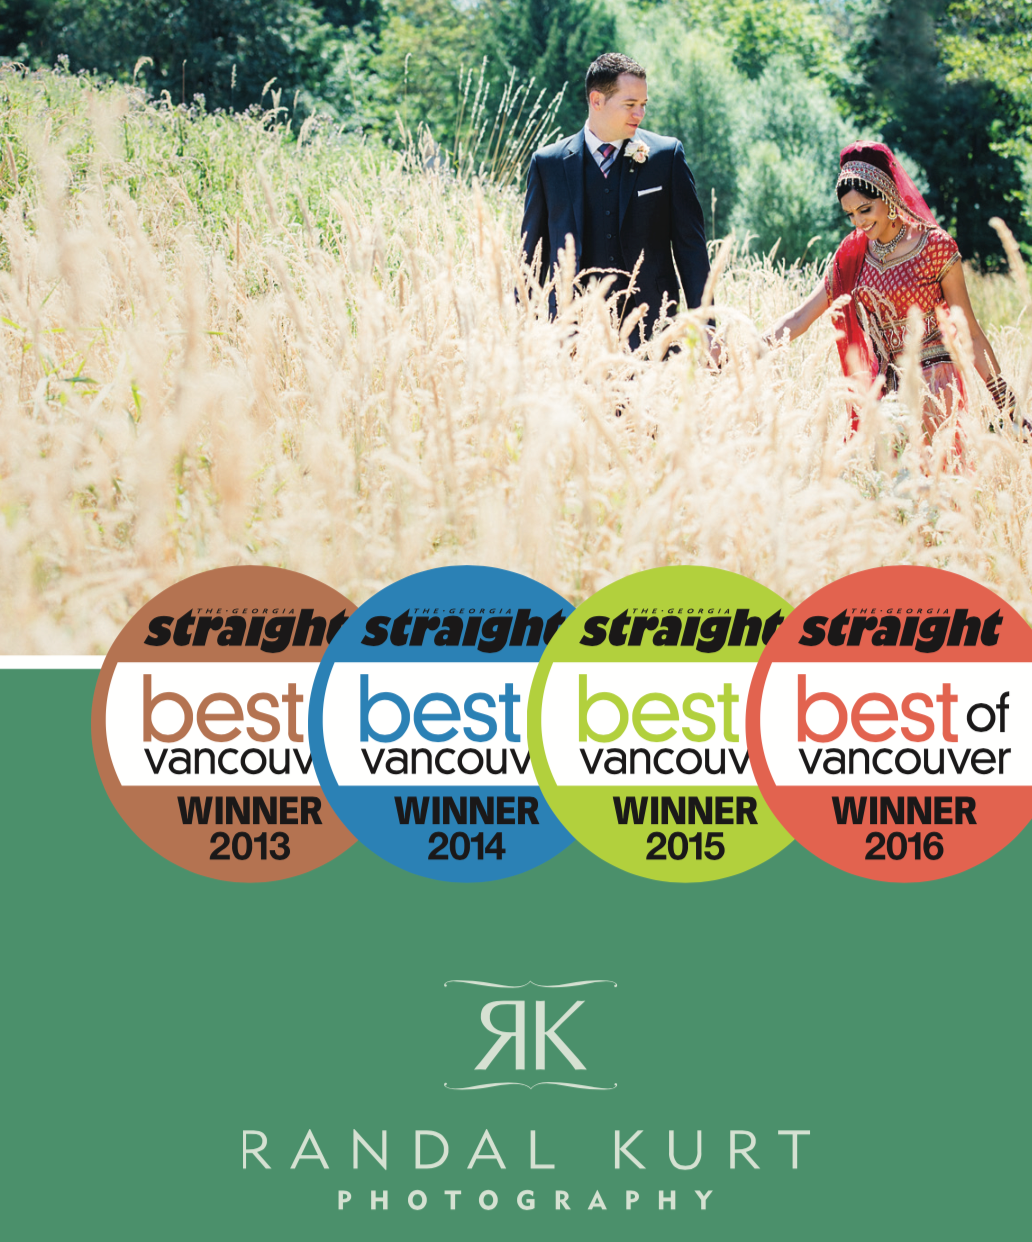 Awarded Best Professional Photographer, The Georgia Straight's Best of Vancouver, 2016